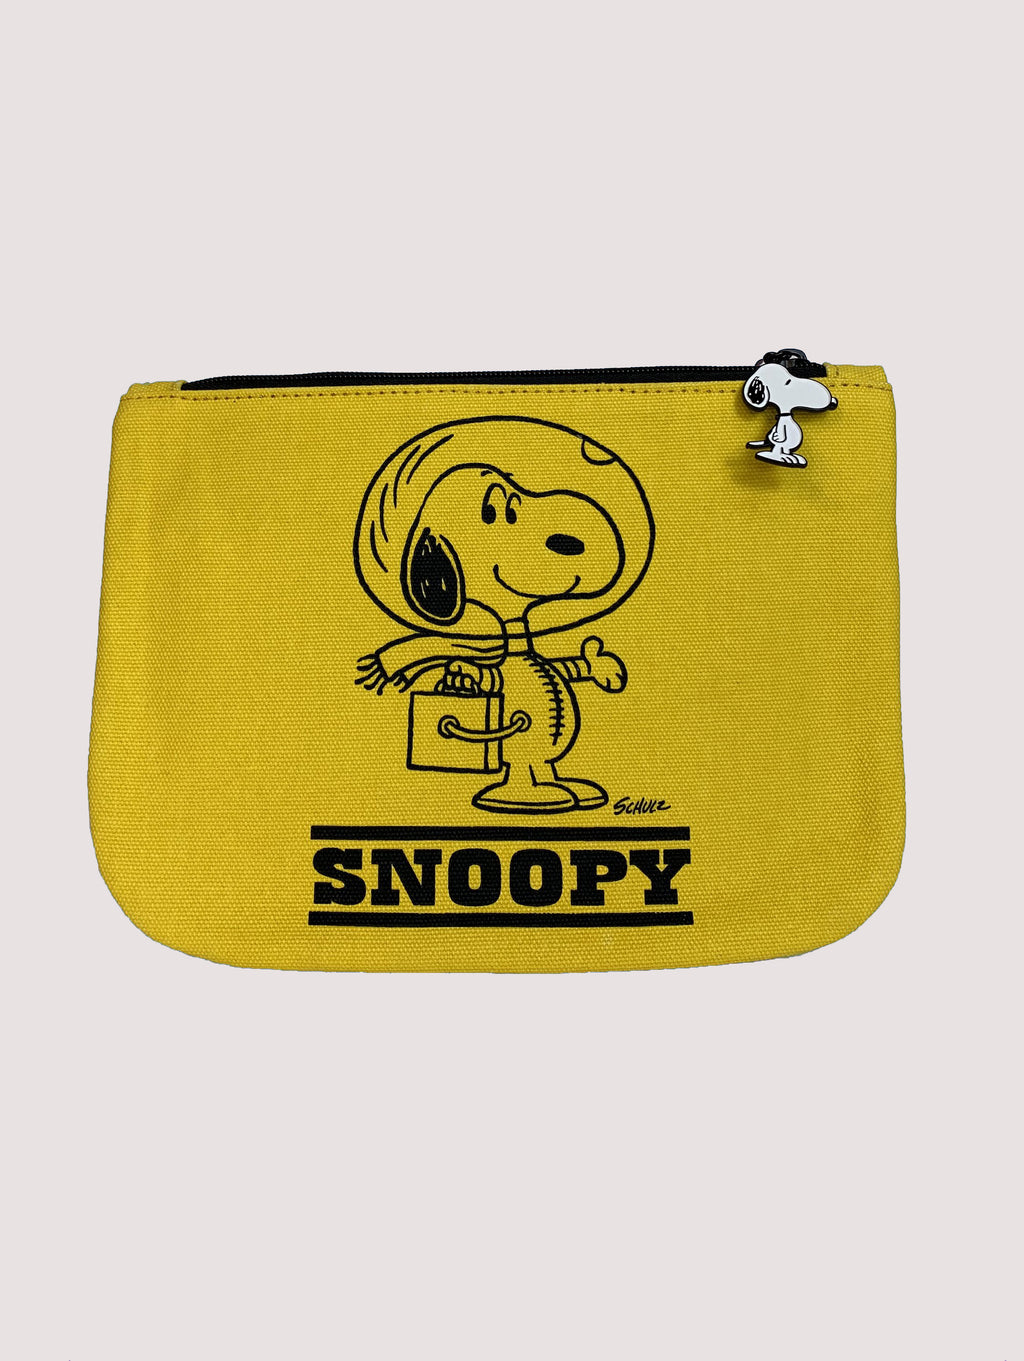 SNOOPY POUCH -  ALL SYSTEMS ARE GO!